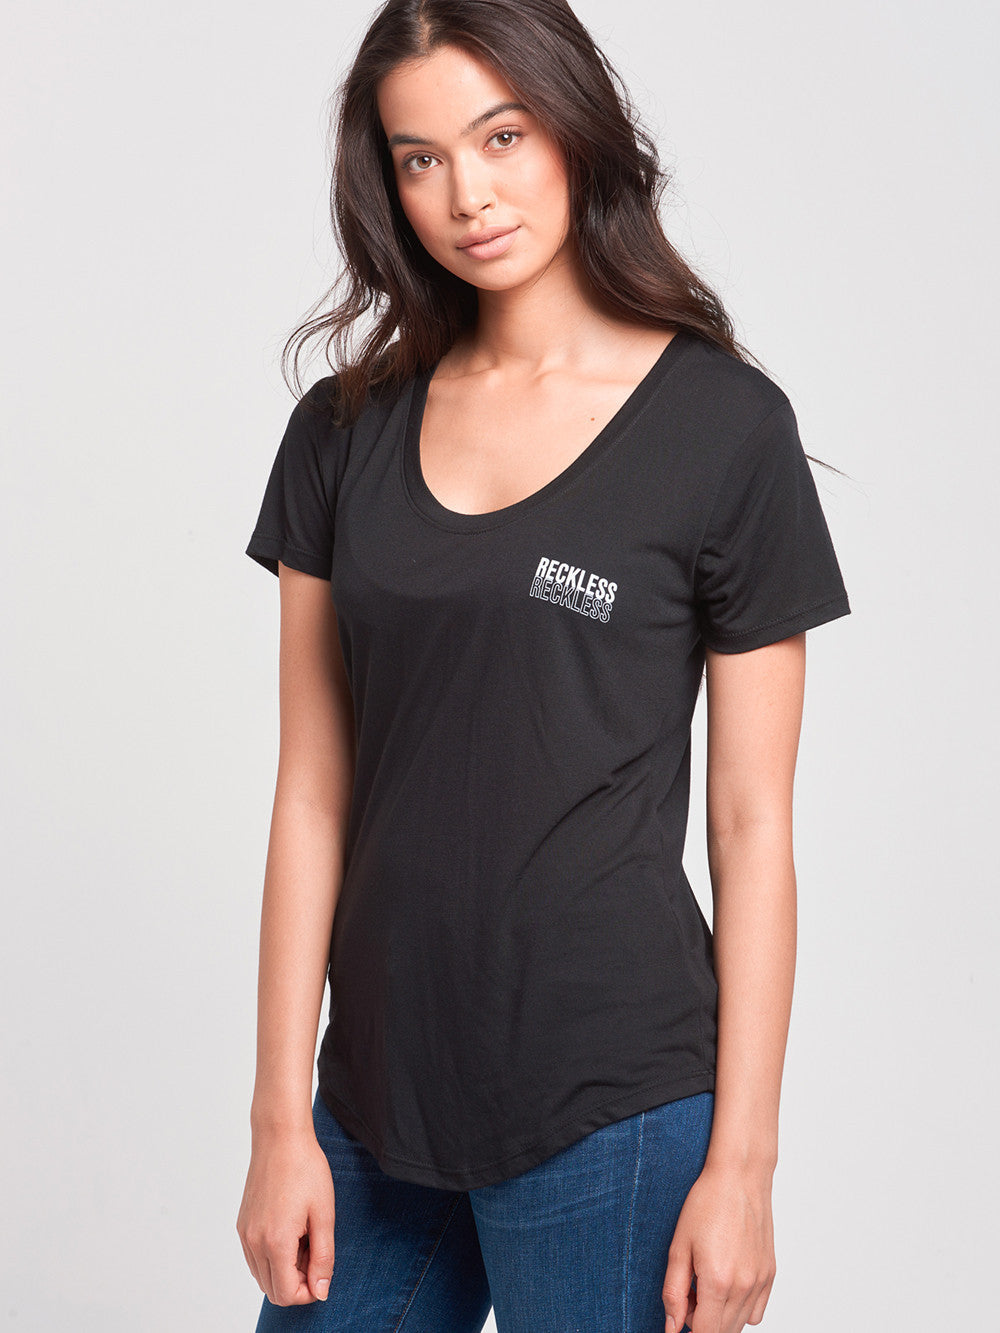 Reckless Girls Womens - Tops - Tees Reflect Scoop Neck Tee- Black